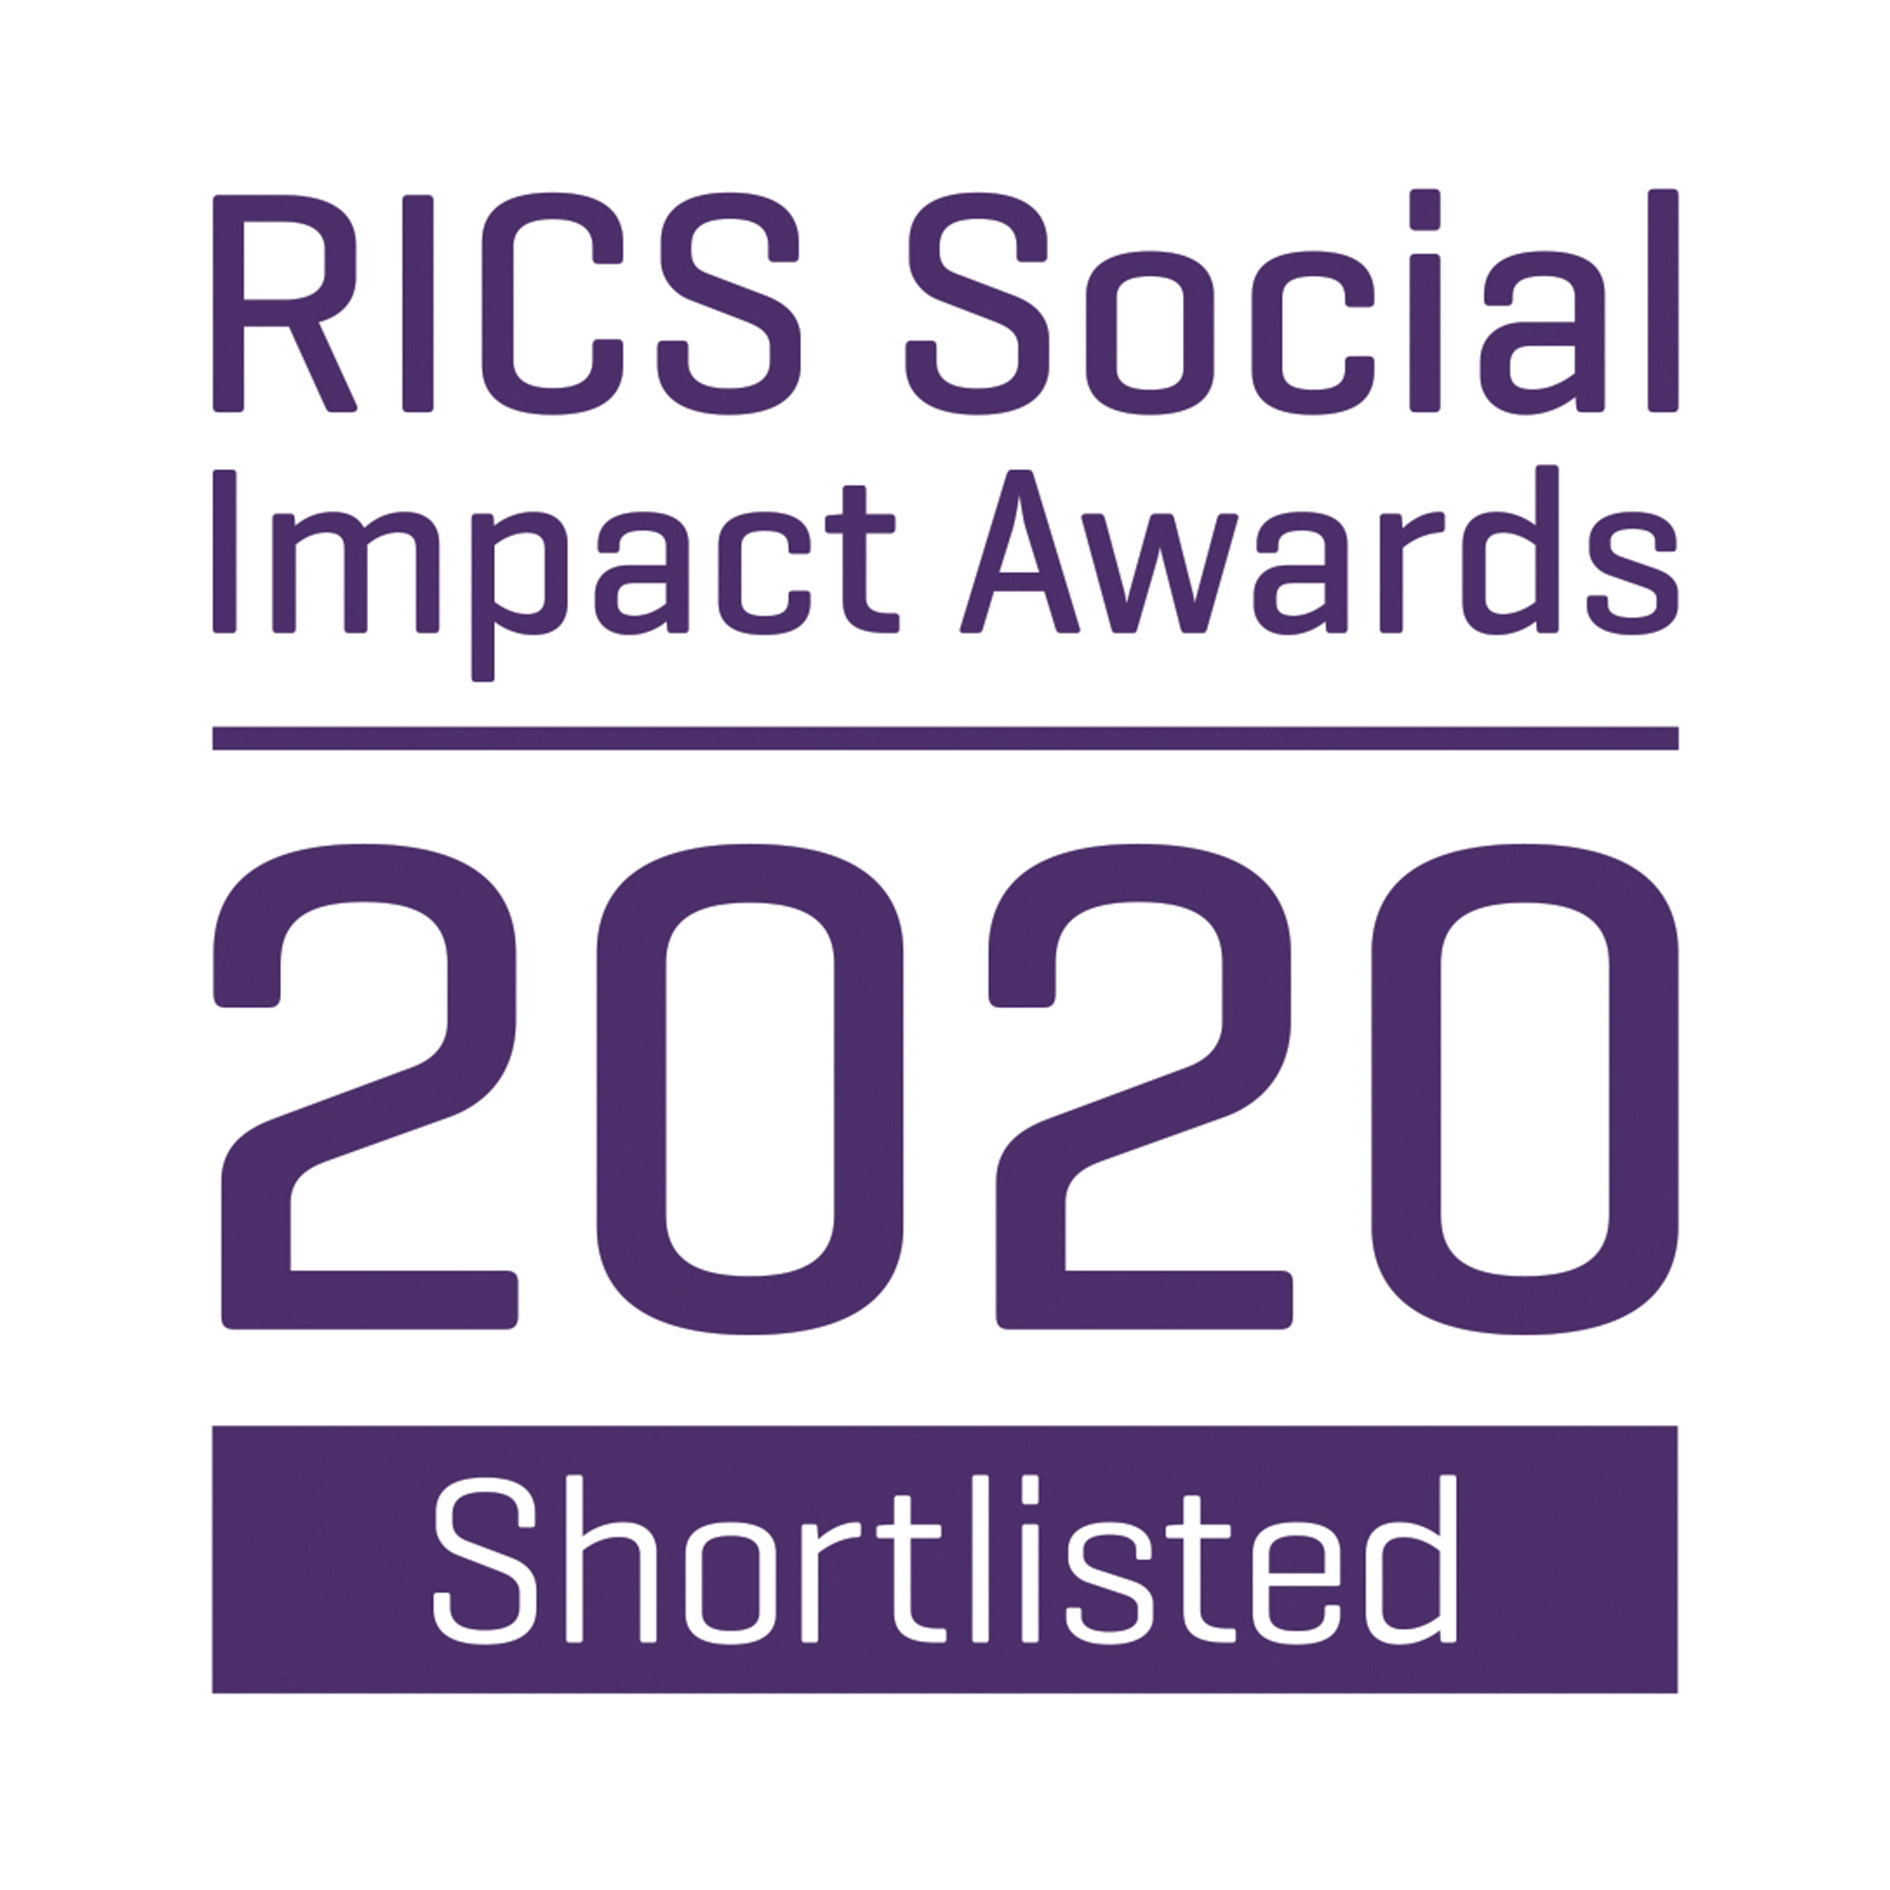 20-03-09-Studio-144-Shortlisted-for-inaugural-RICS-Social-Impact-Awards-2020-in-the-Leisure-category.jpg